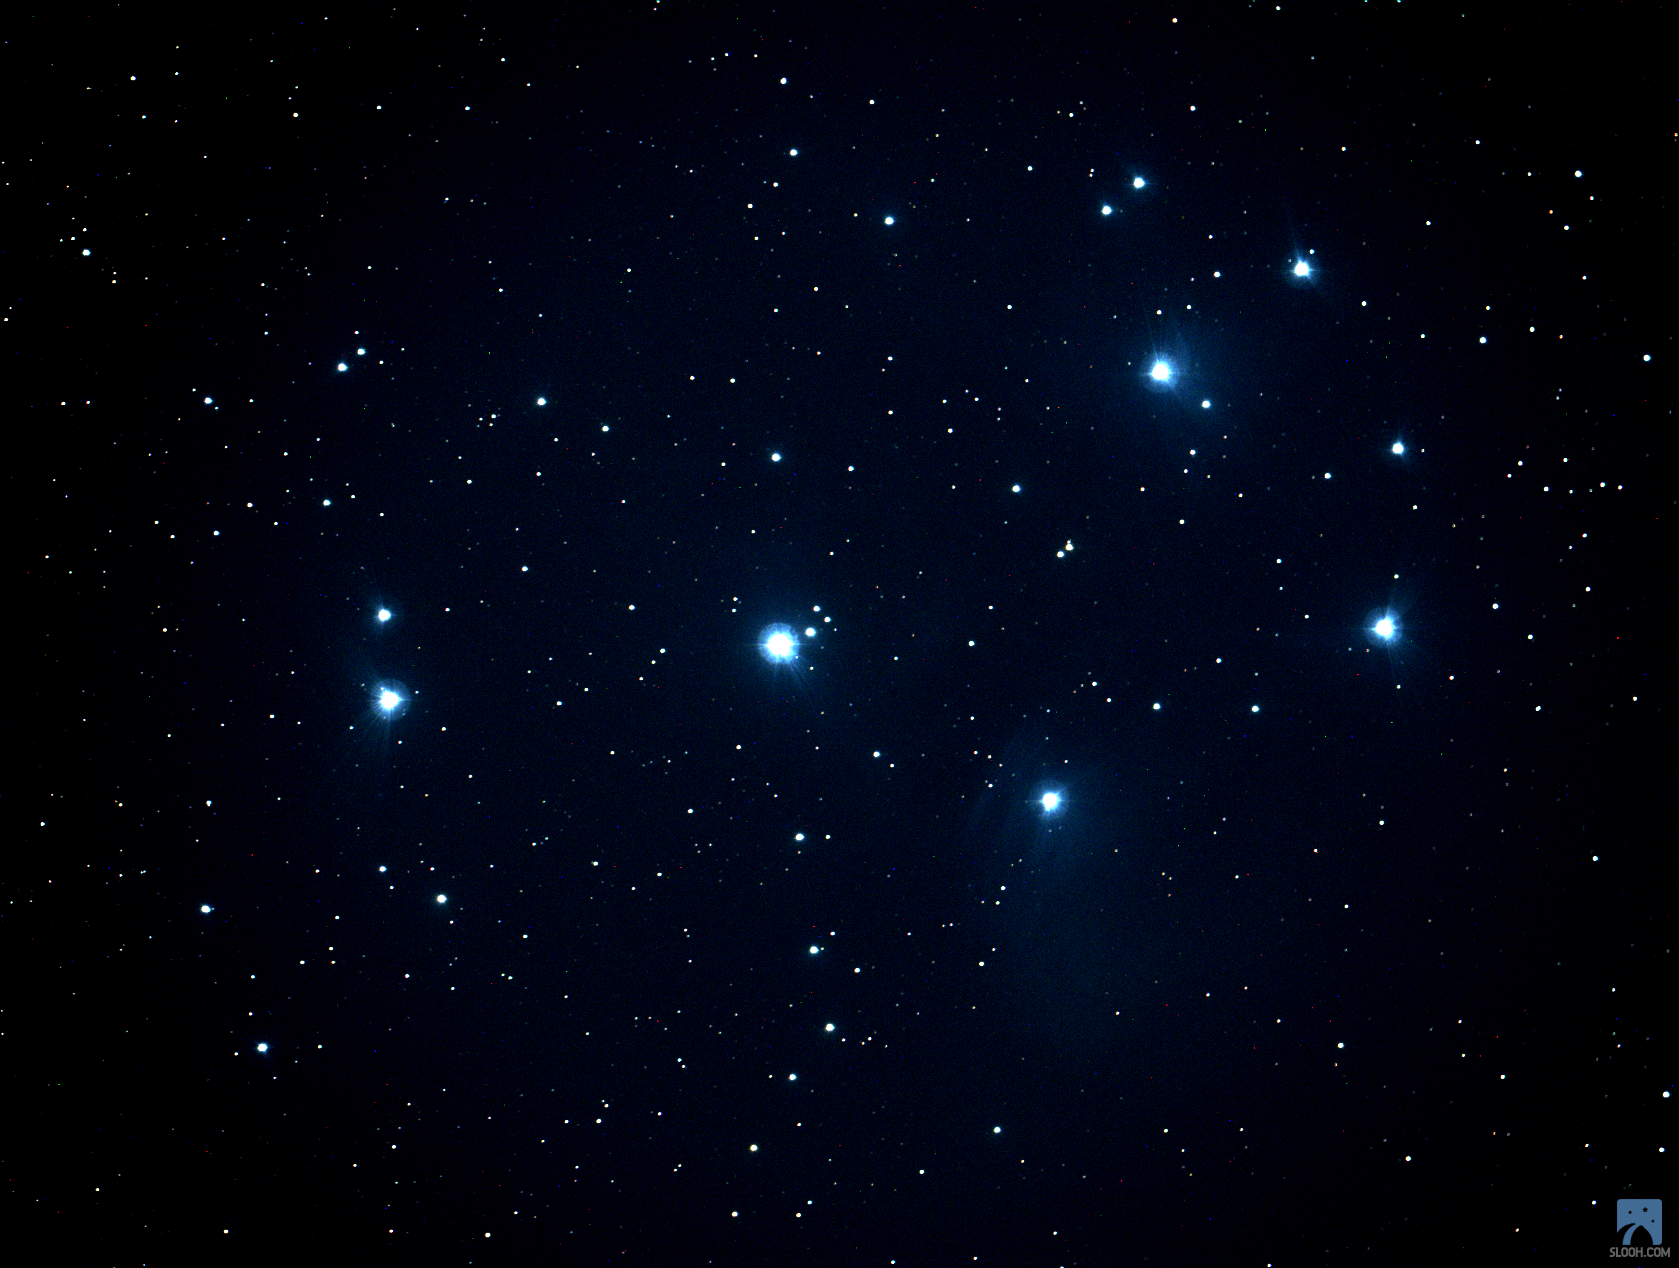 Taken At 2 05am Edt With The Slooh Canary Deep Sky Telescope By Karent 2018 Who Says The Pleiades Star Clust Star Cluster Taurus Constellation Star Clusters